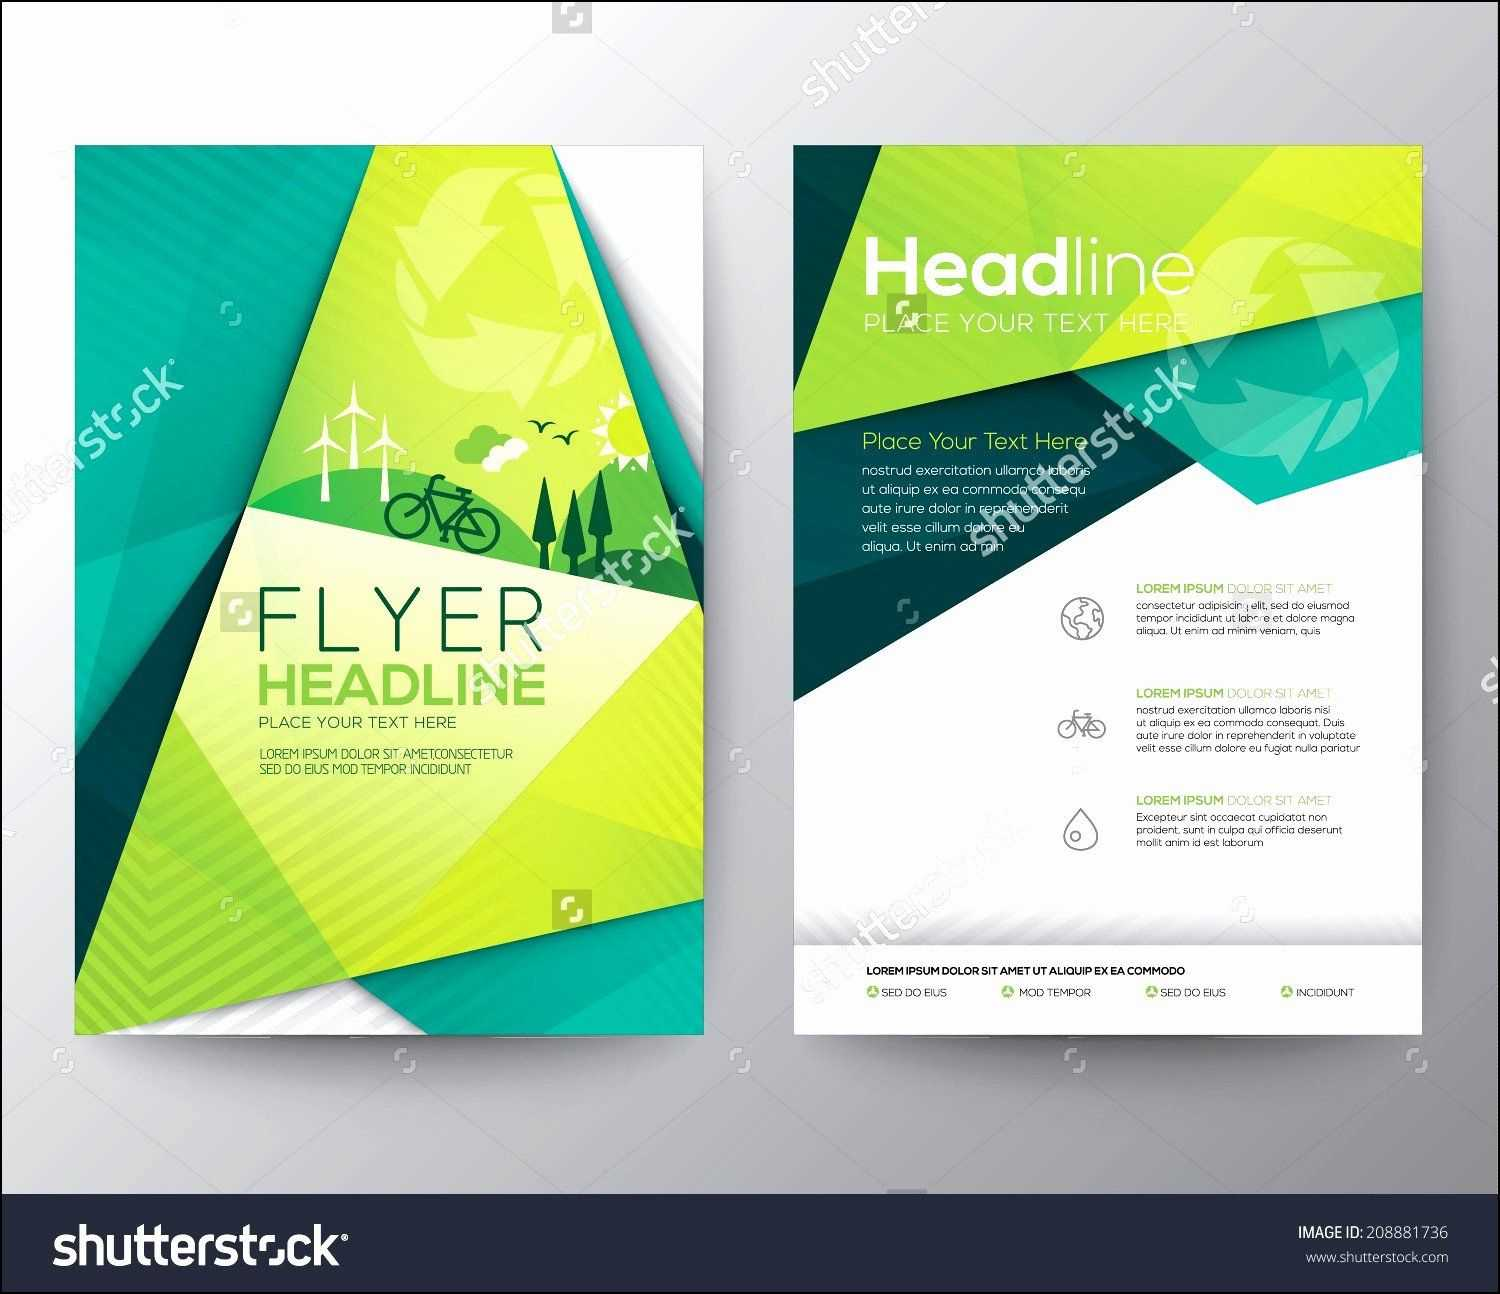 011 Template Ideas Free Downloadable Flyer Beautiful With Free Downloadable Flyer Templates